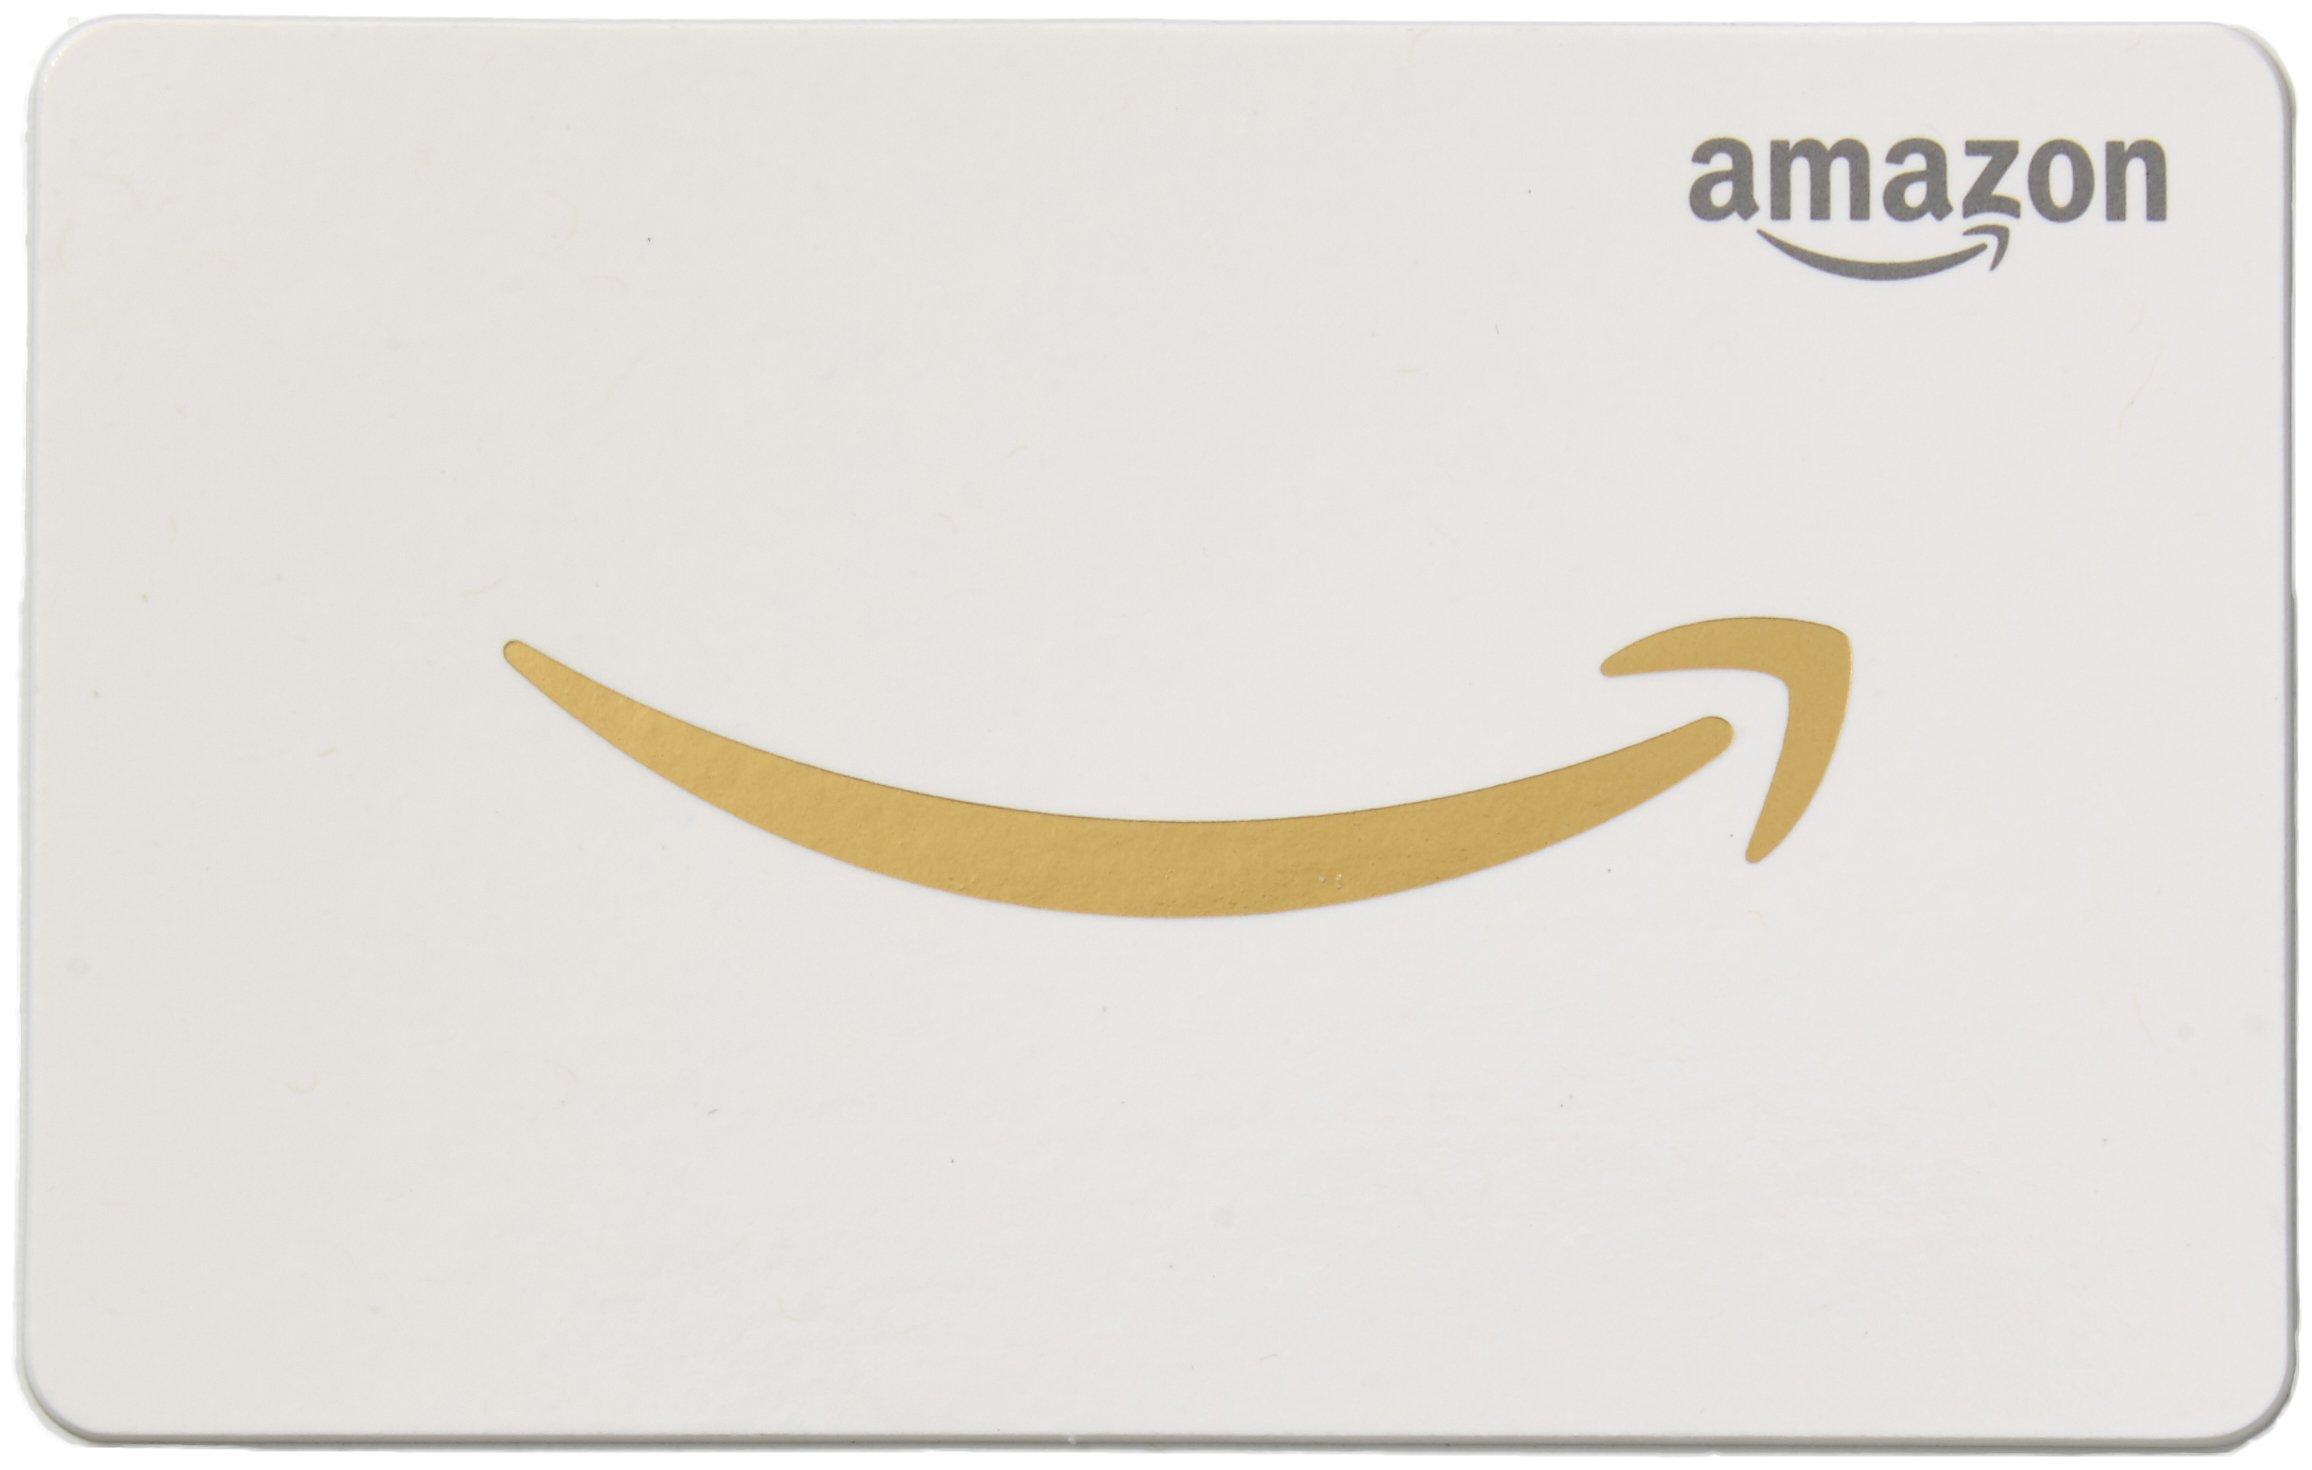 Amazon.com Gift Card in a Pink and Gold Gift Bag by Amazon (Image #7)